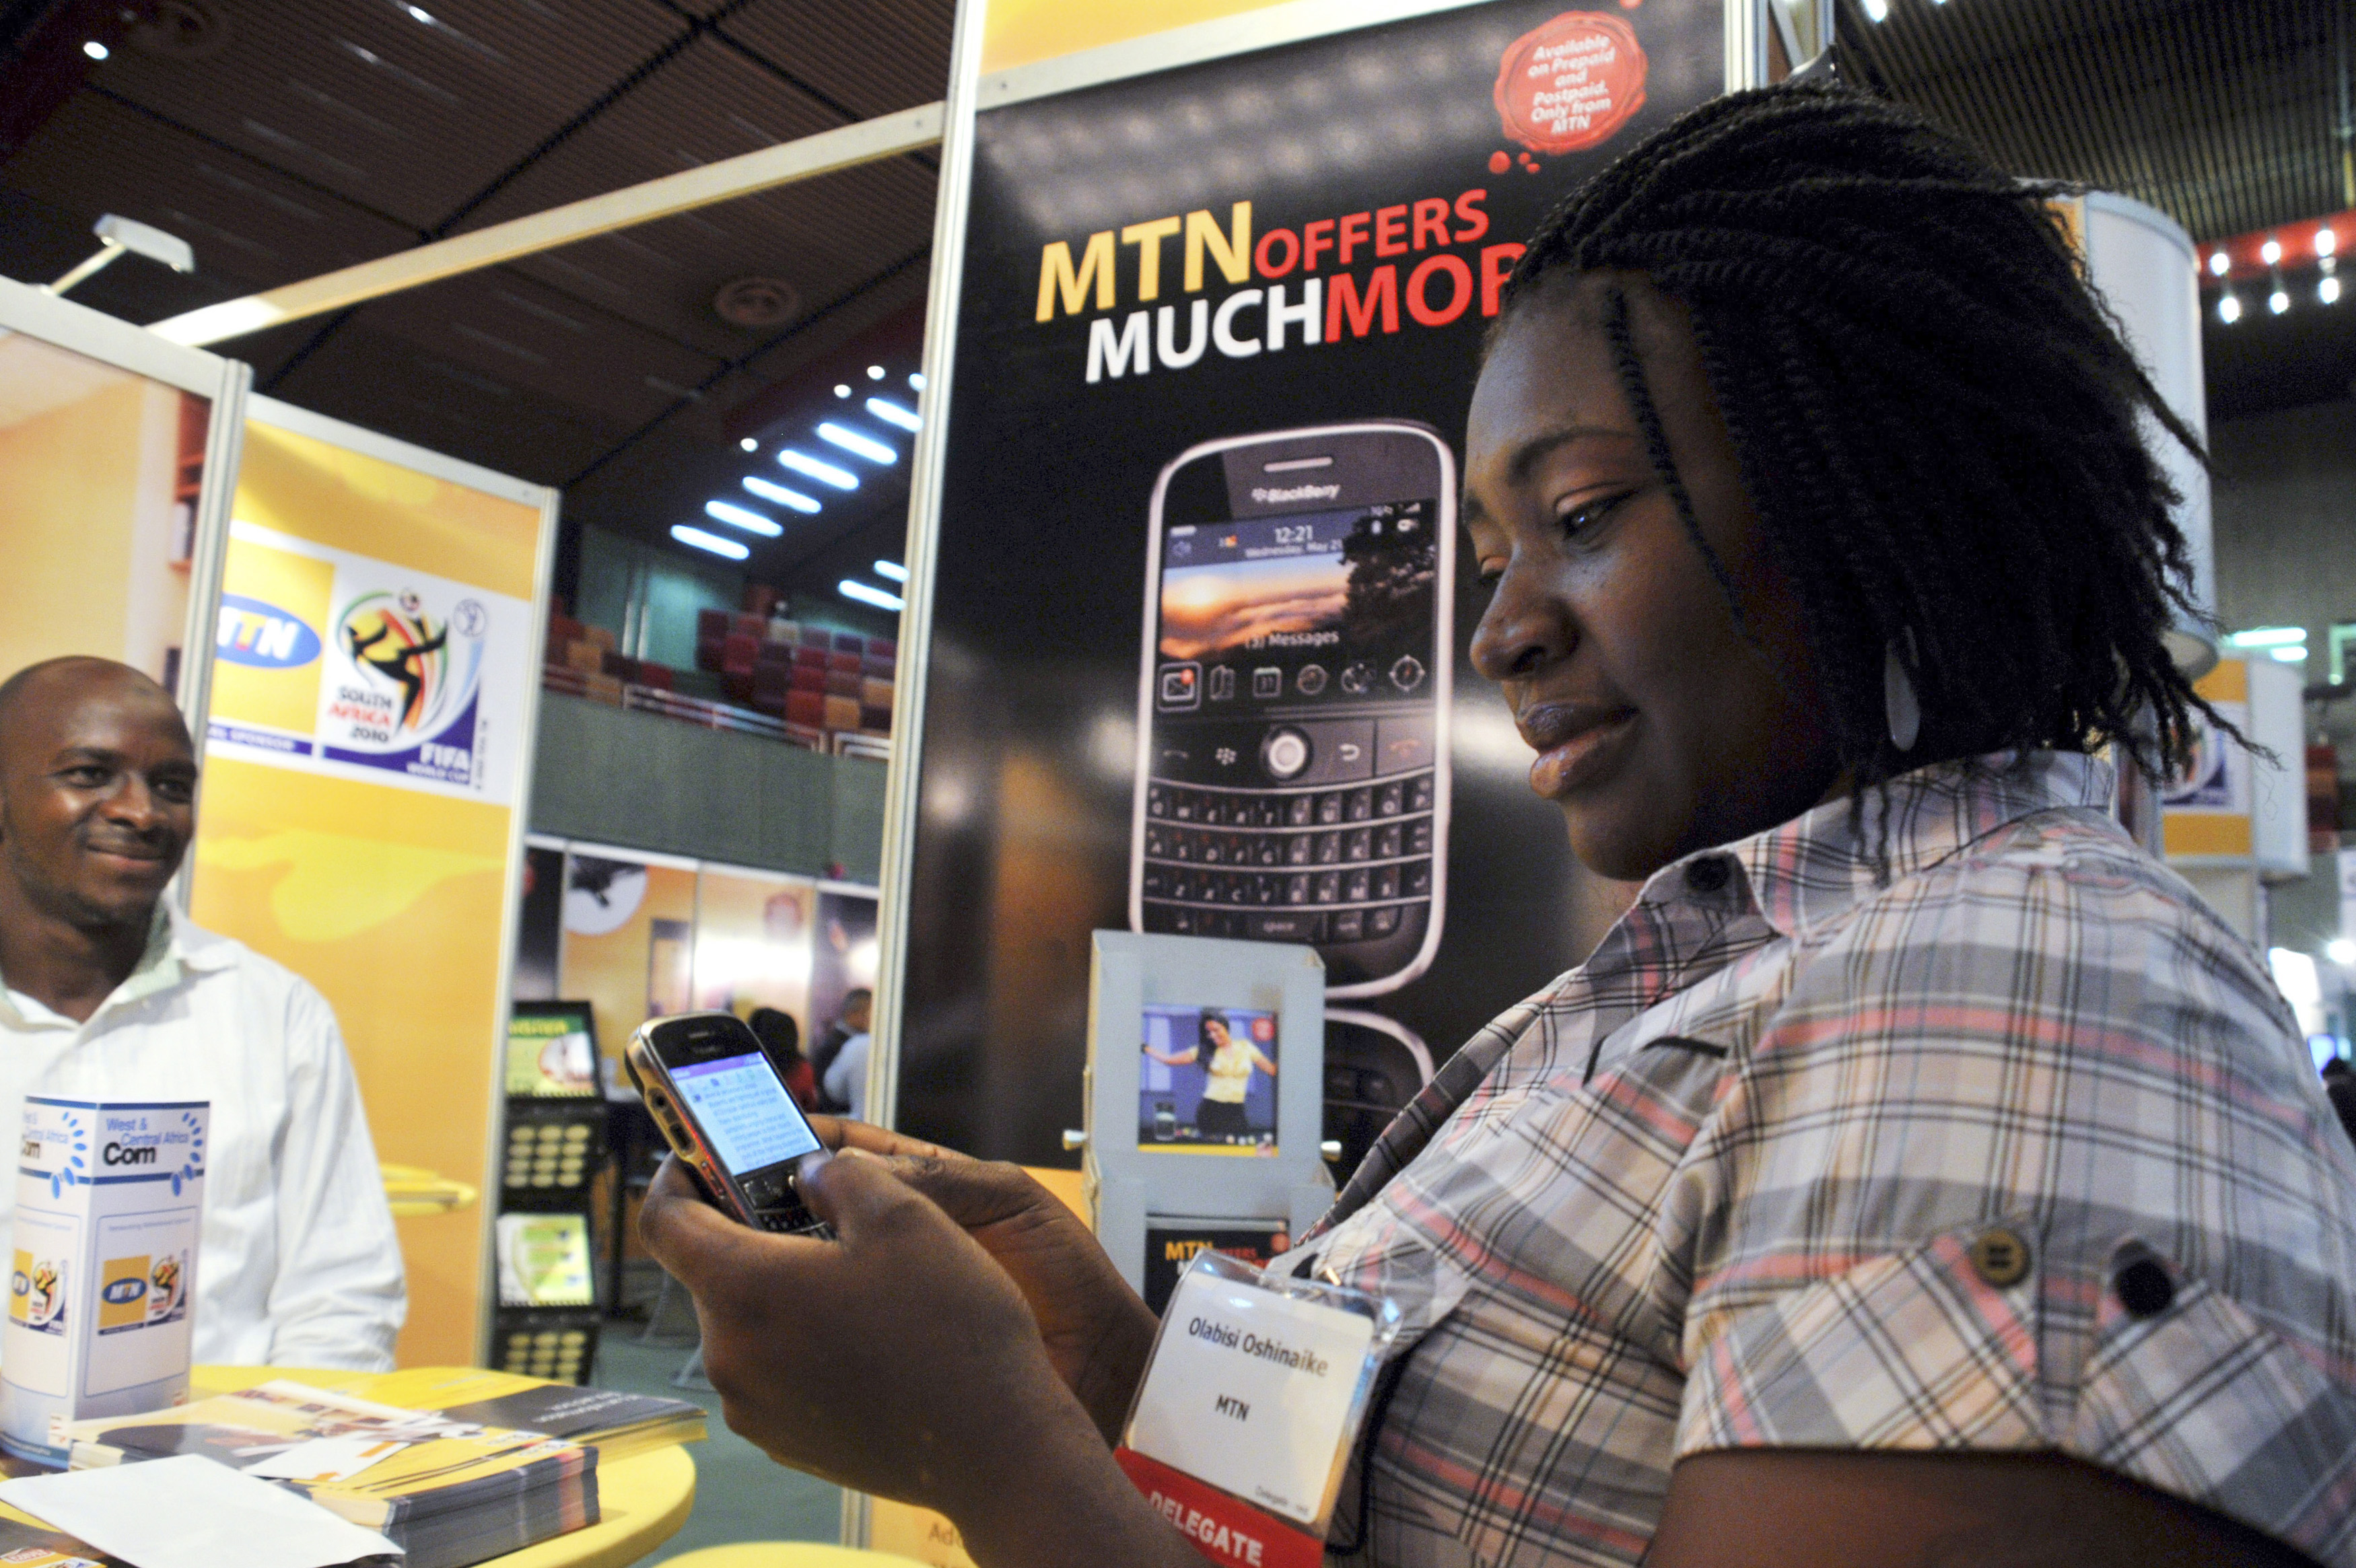 A delegate checks a blackberry handset at an exhibition stand